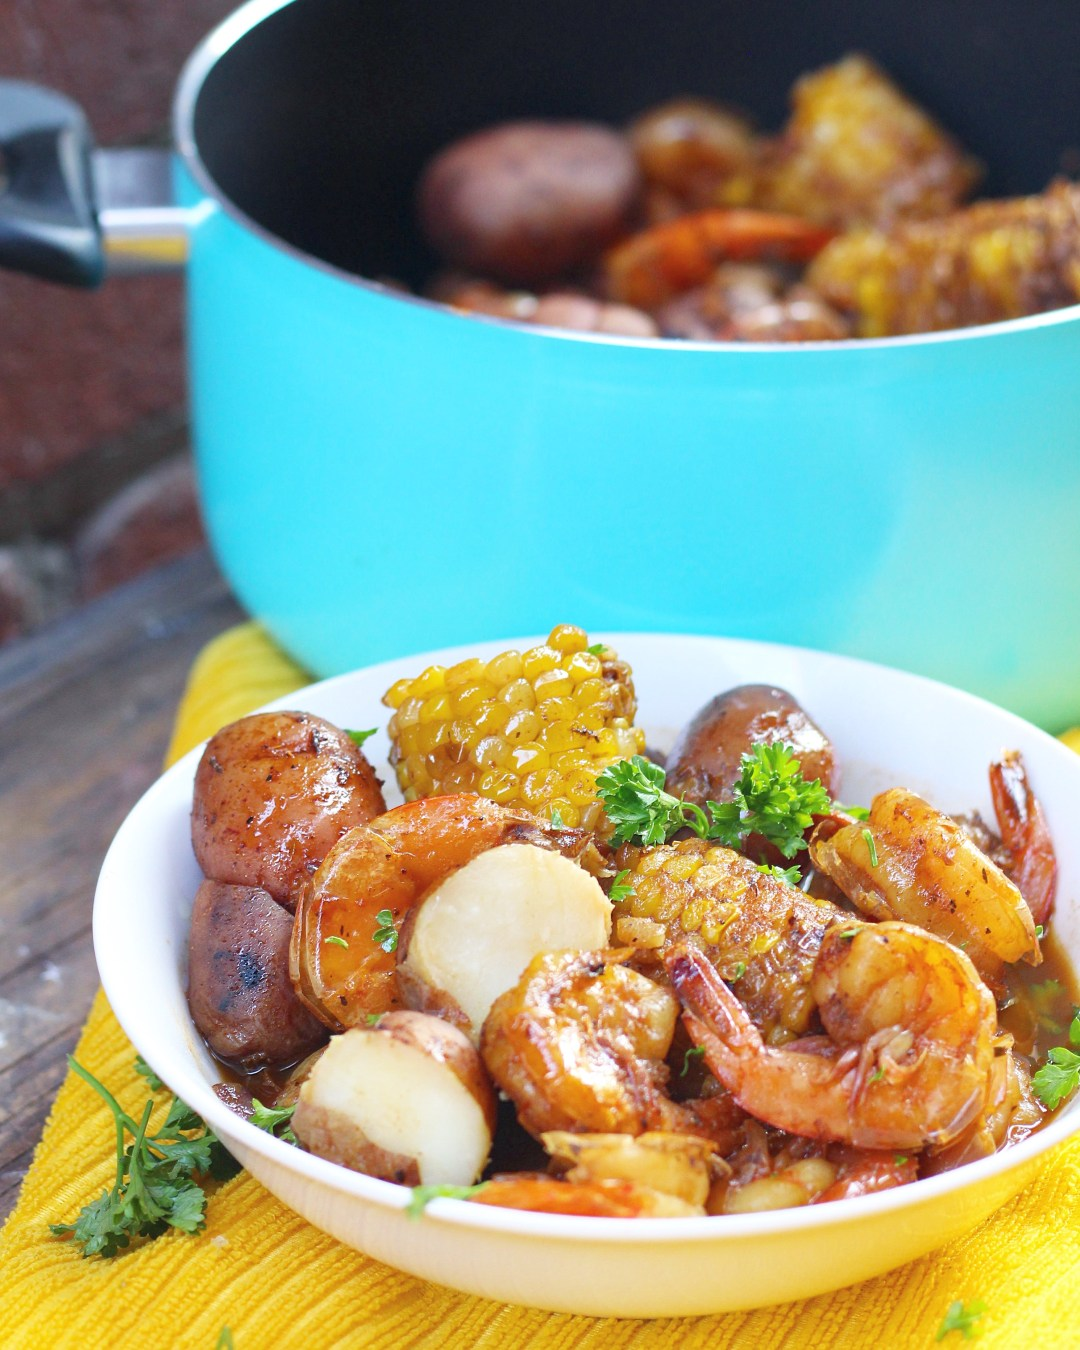 Easy Shrimp boil made all in one pot with shrimp, corn, potatoes, and San Pedro Fish Market's famous signature spice! Clean up is a breeze!